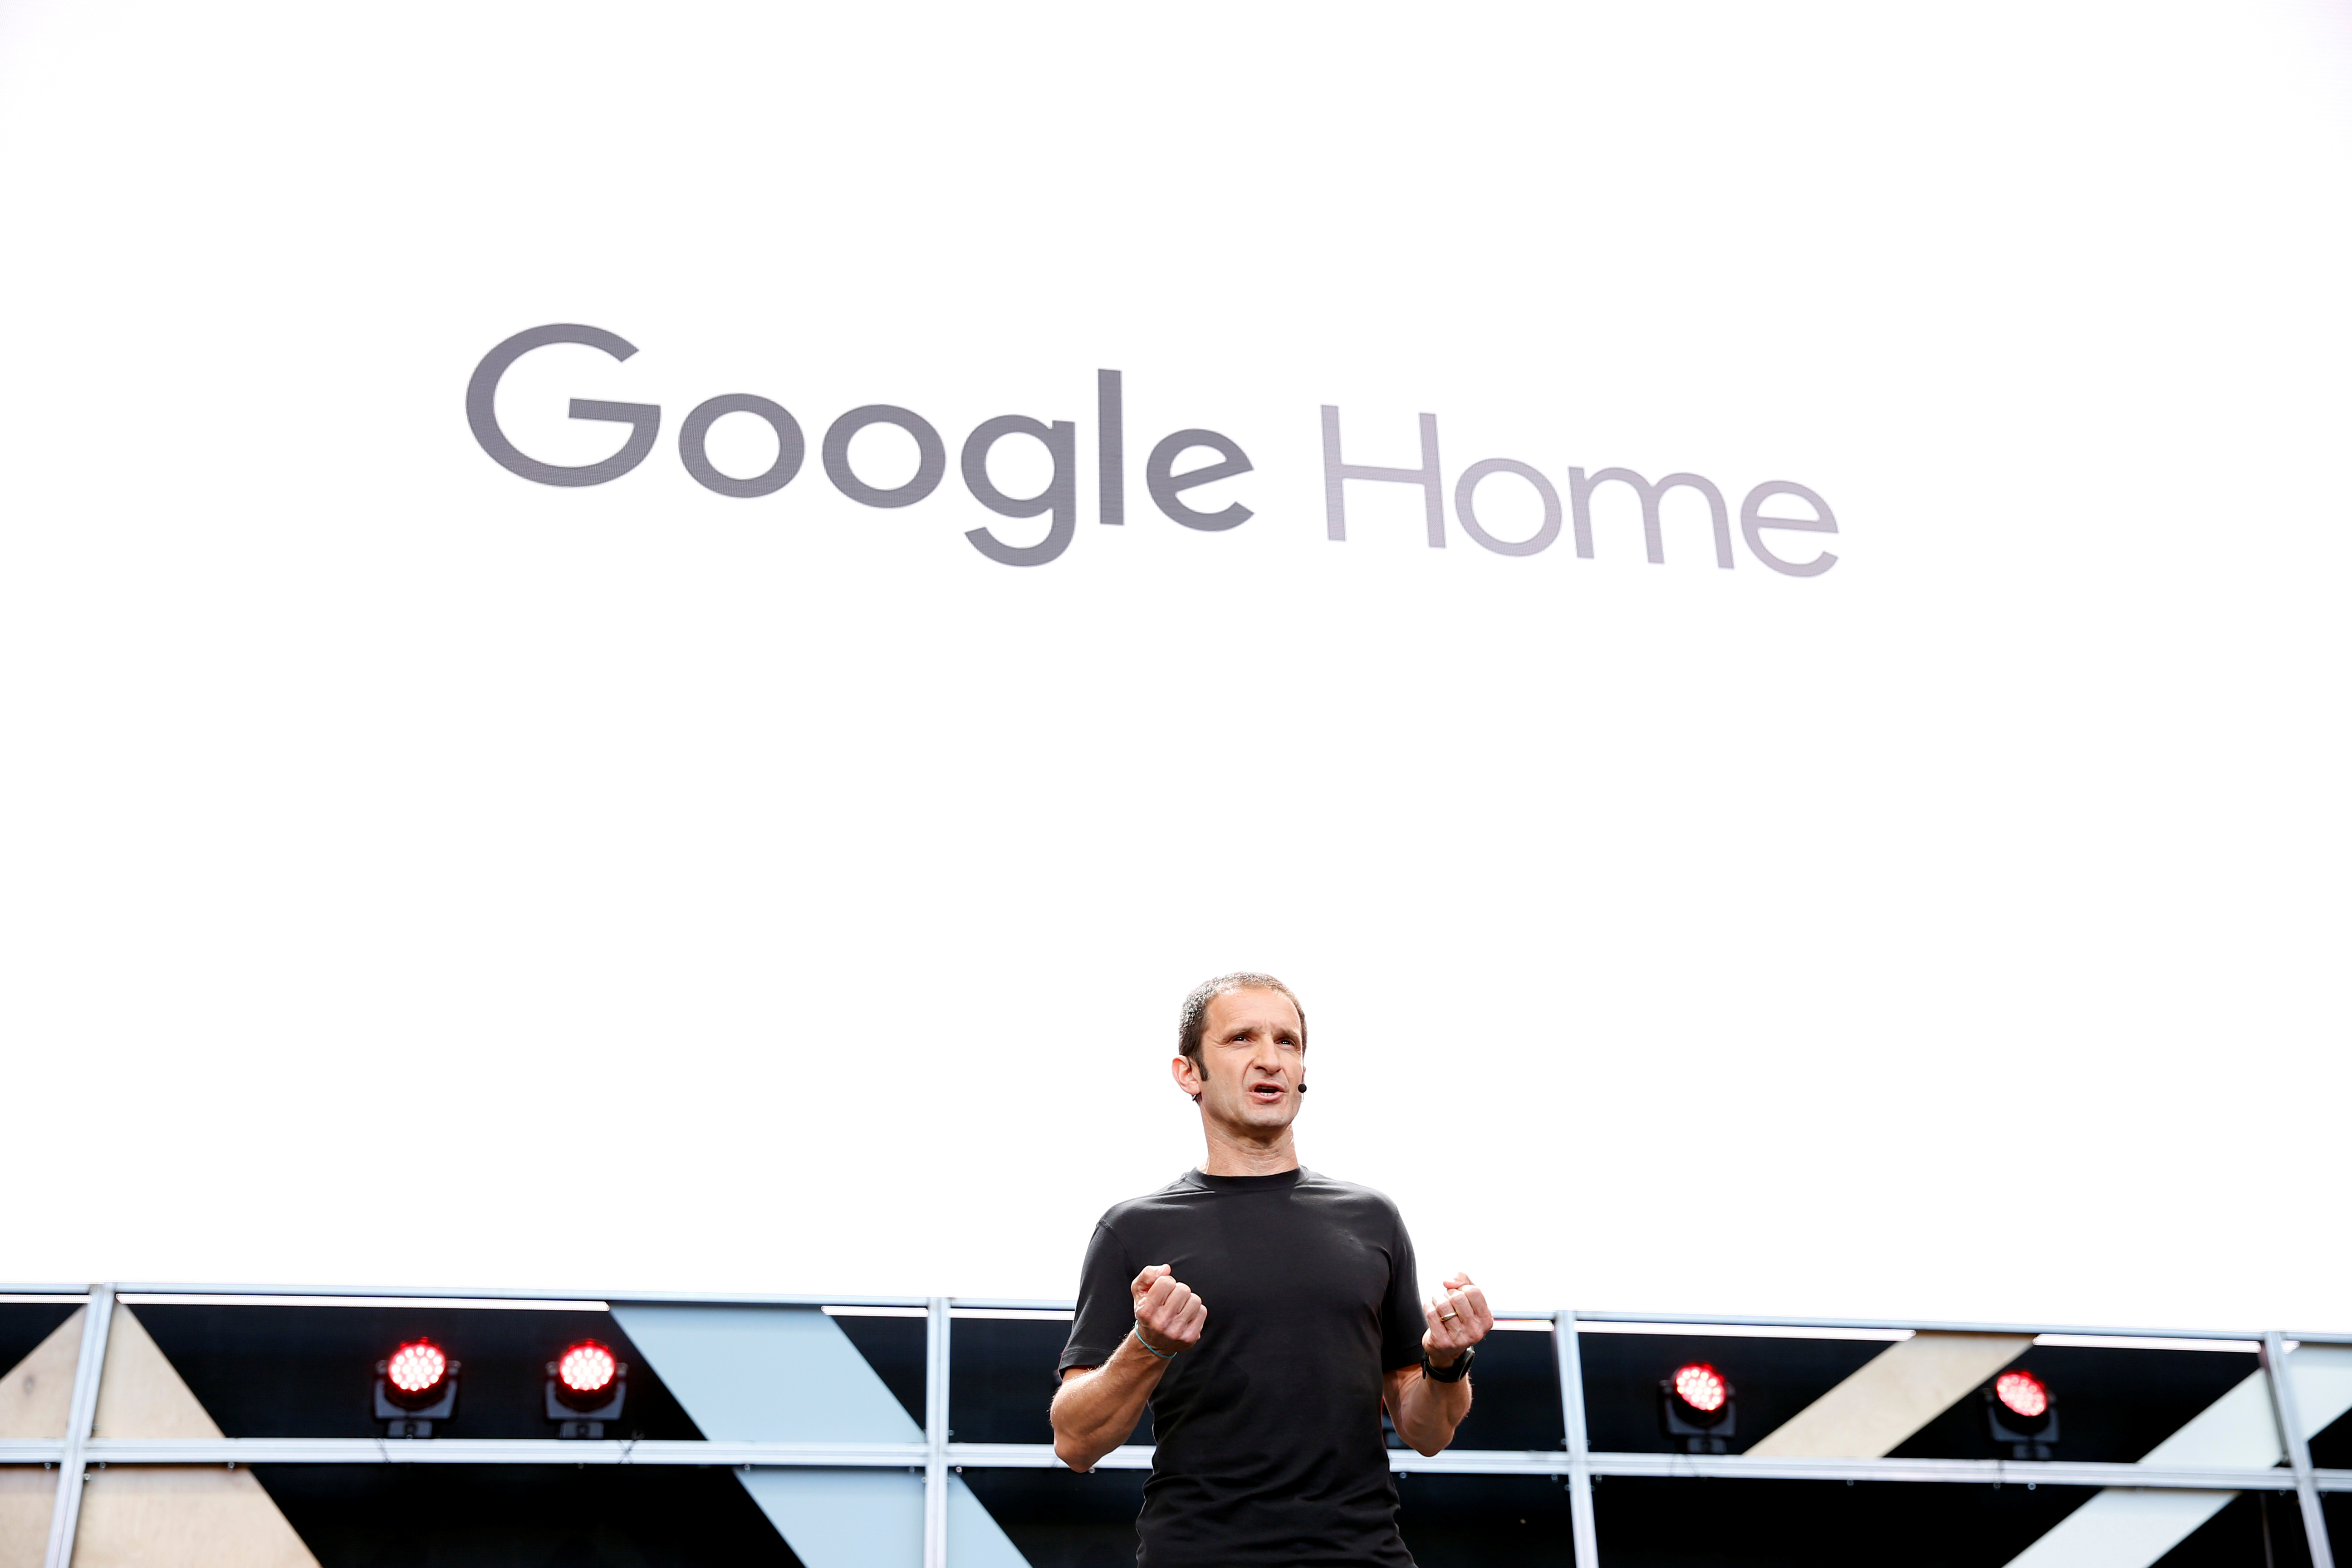 Mario Queiroz introduces Google Home during the Google I/O 2016 I/O 2016 developers conference in Mountain View, California